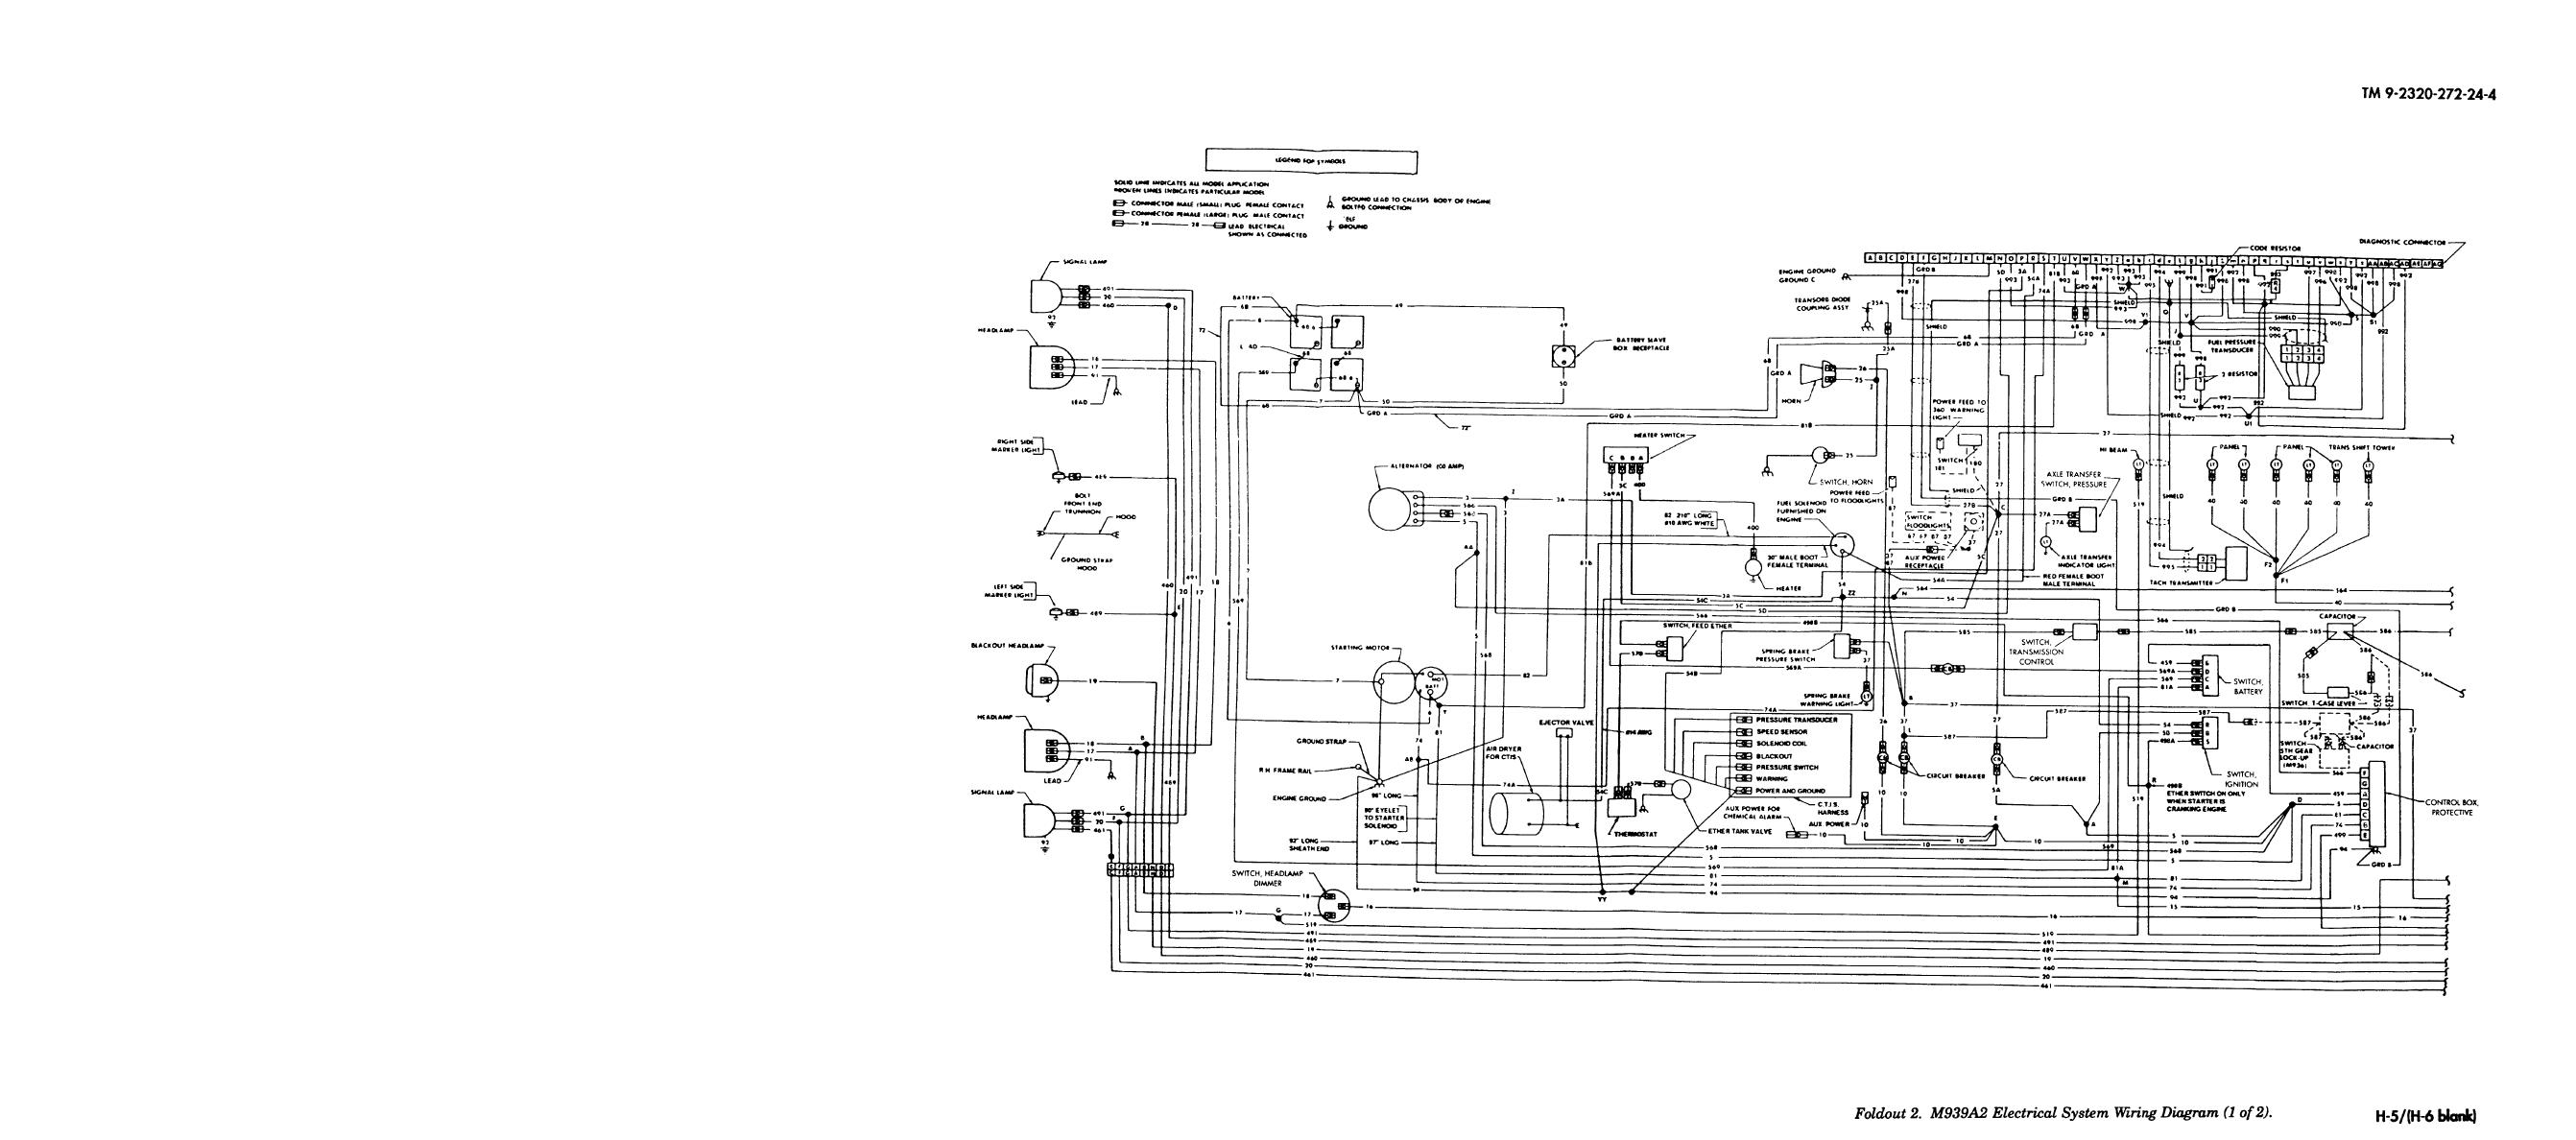 Foldout 2  M939a2 Electrical System Wiring Diagram  1 Of 2